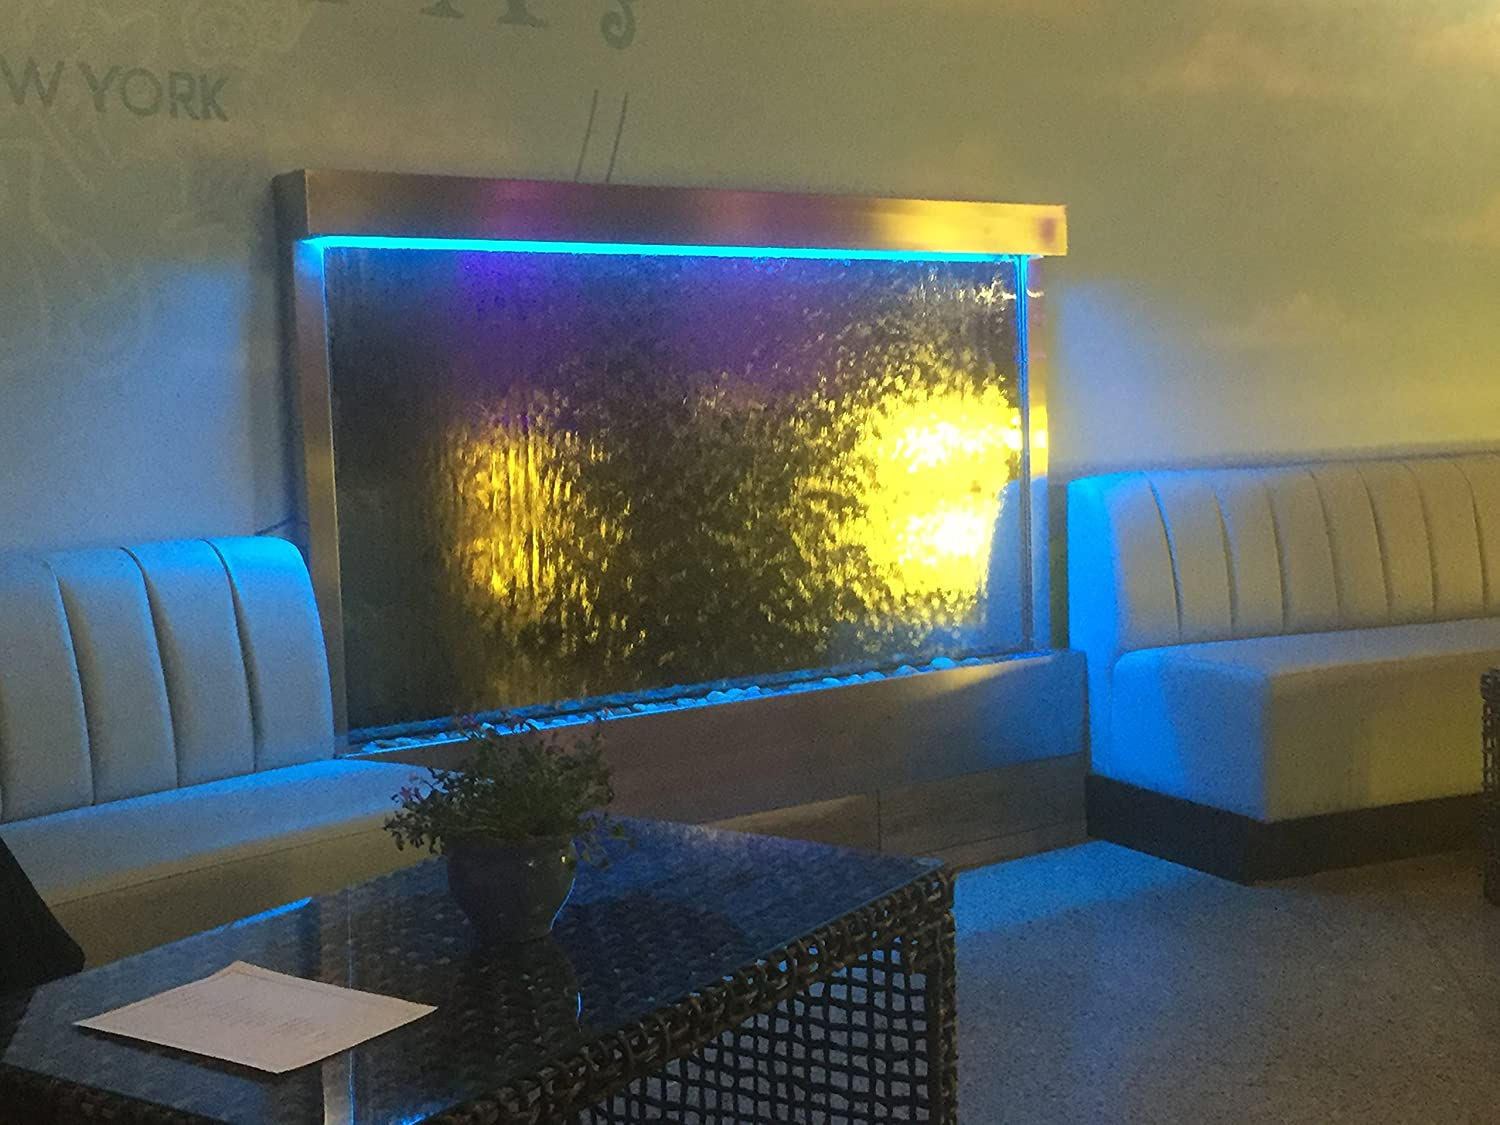 """Jersey Home Decor Waterfall XXL Jumbo 72""""x48"""" Wall Fountain, Stainless Steel,Mirror Glass, Color Lights, Remote Ctrl"""